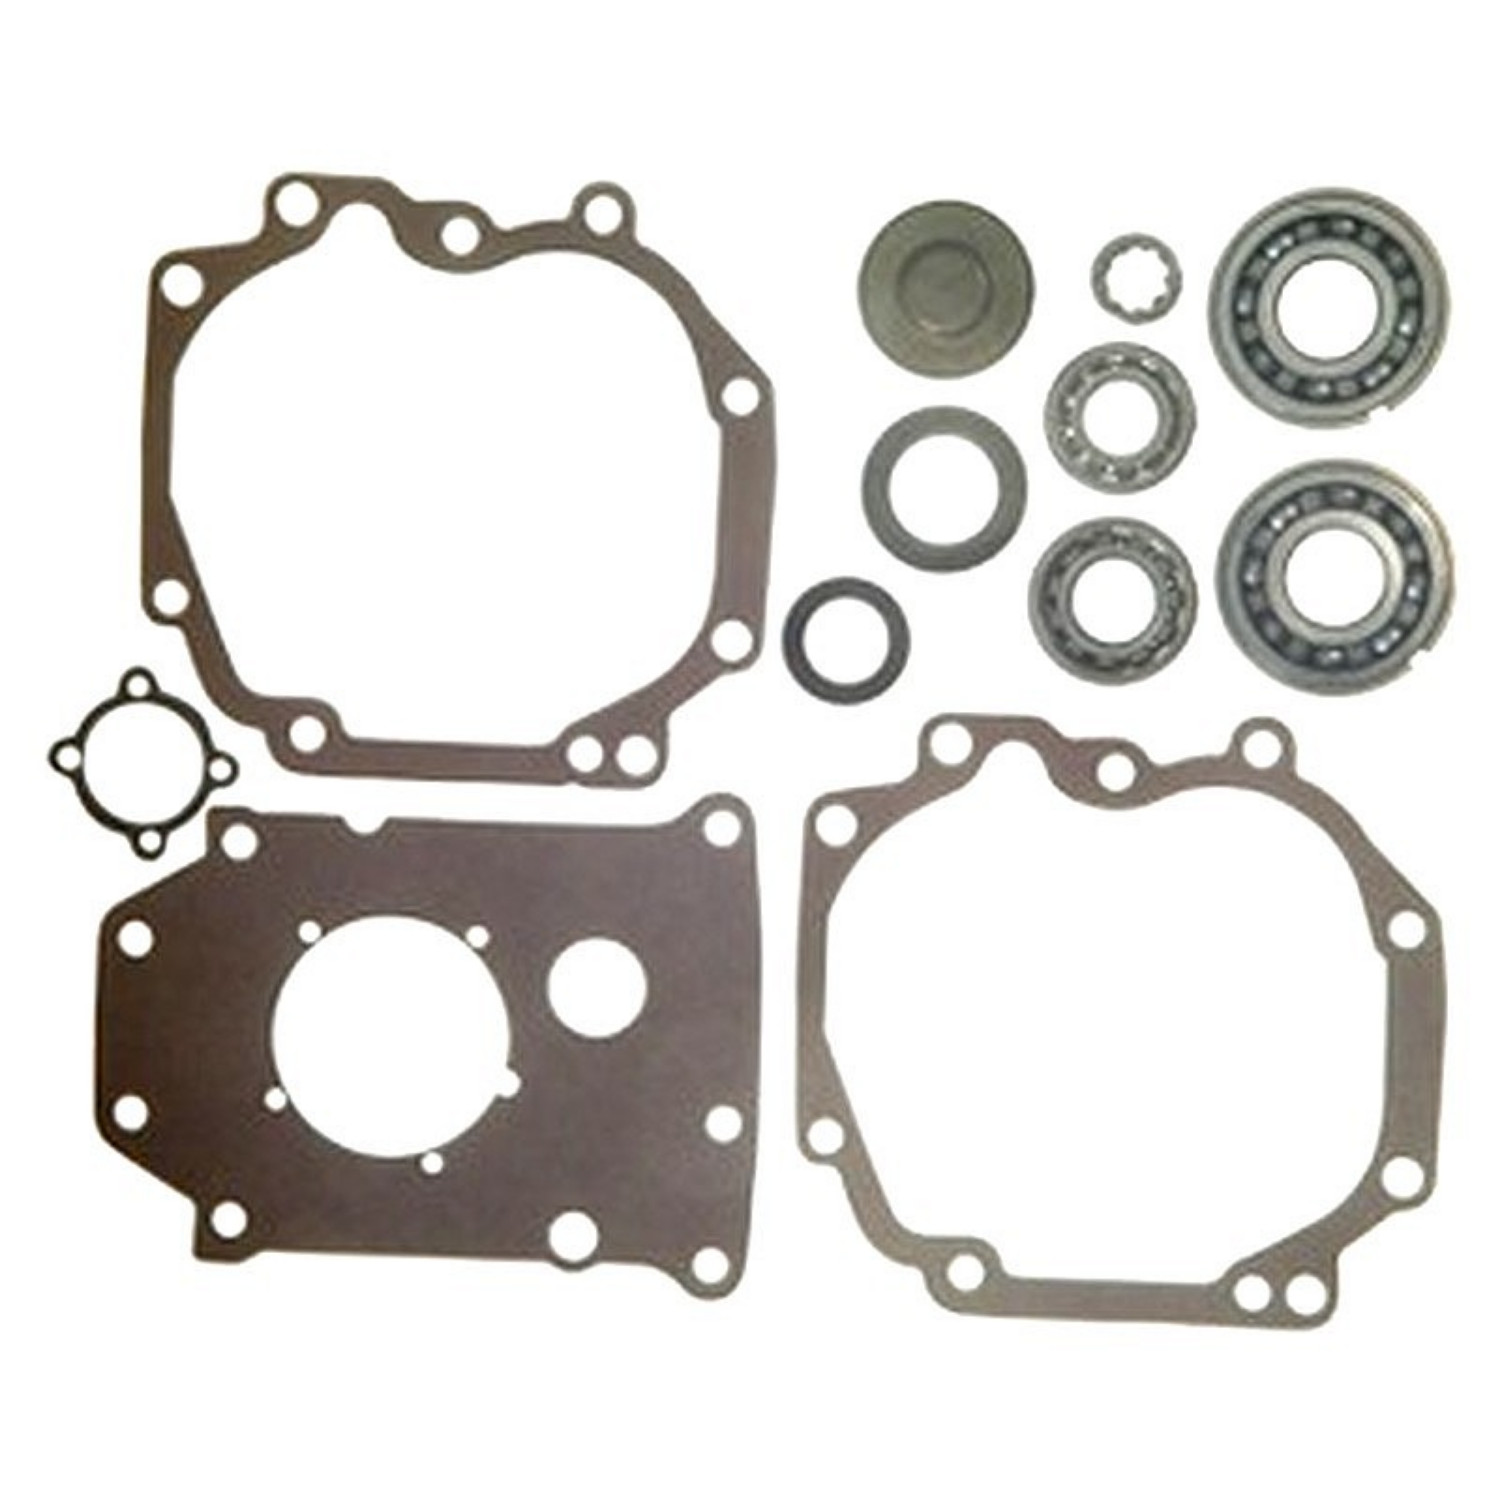 ZMBK103 - USA Standard Manual Transmission Bearing Kit 1974-1984 Toyota Celica & Pickup 2WD